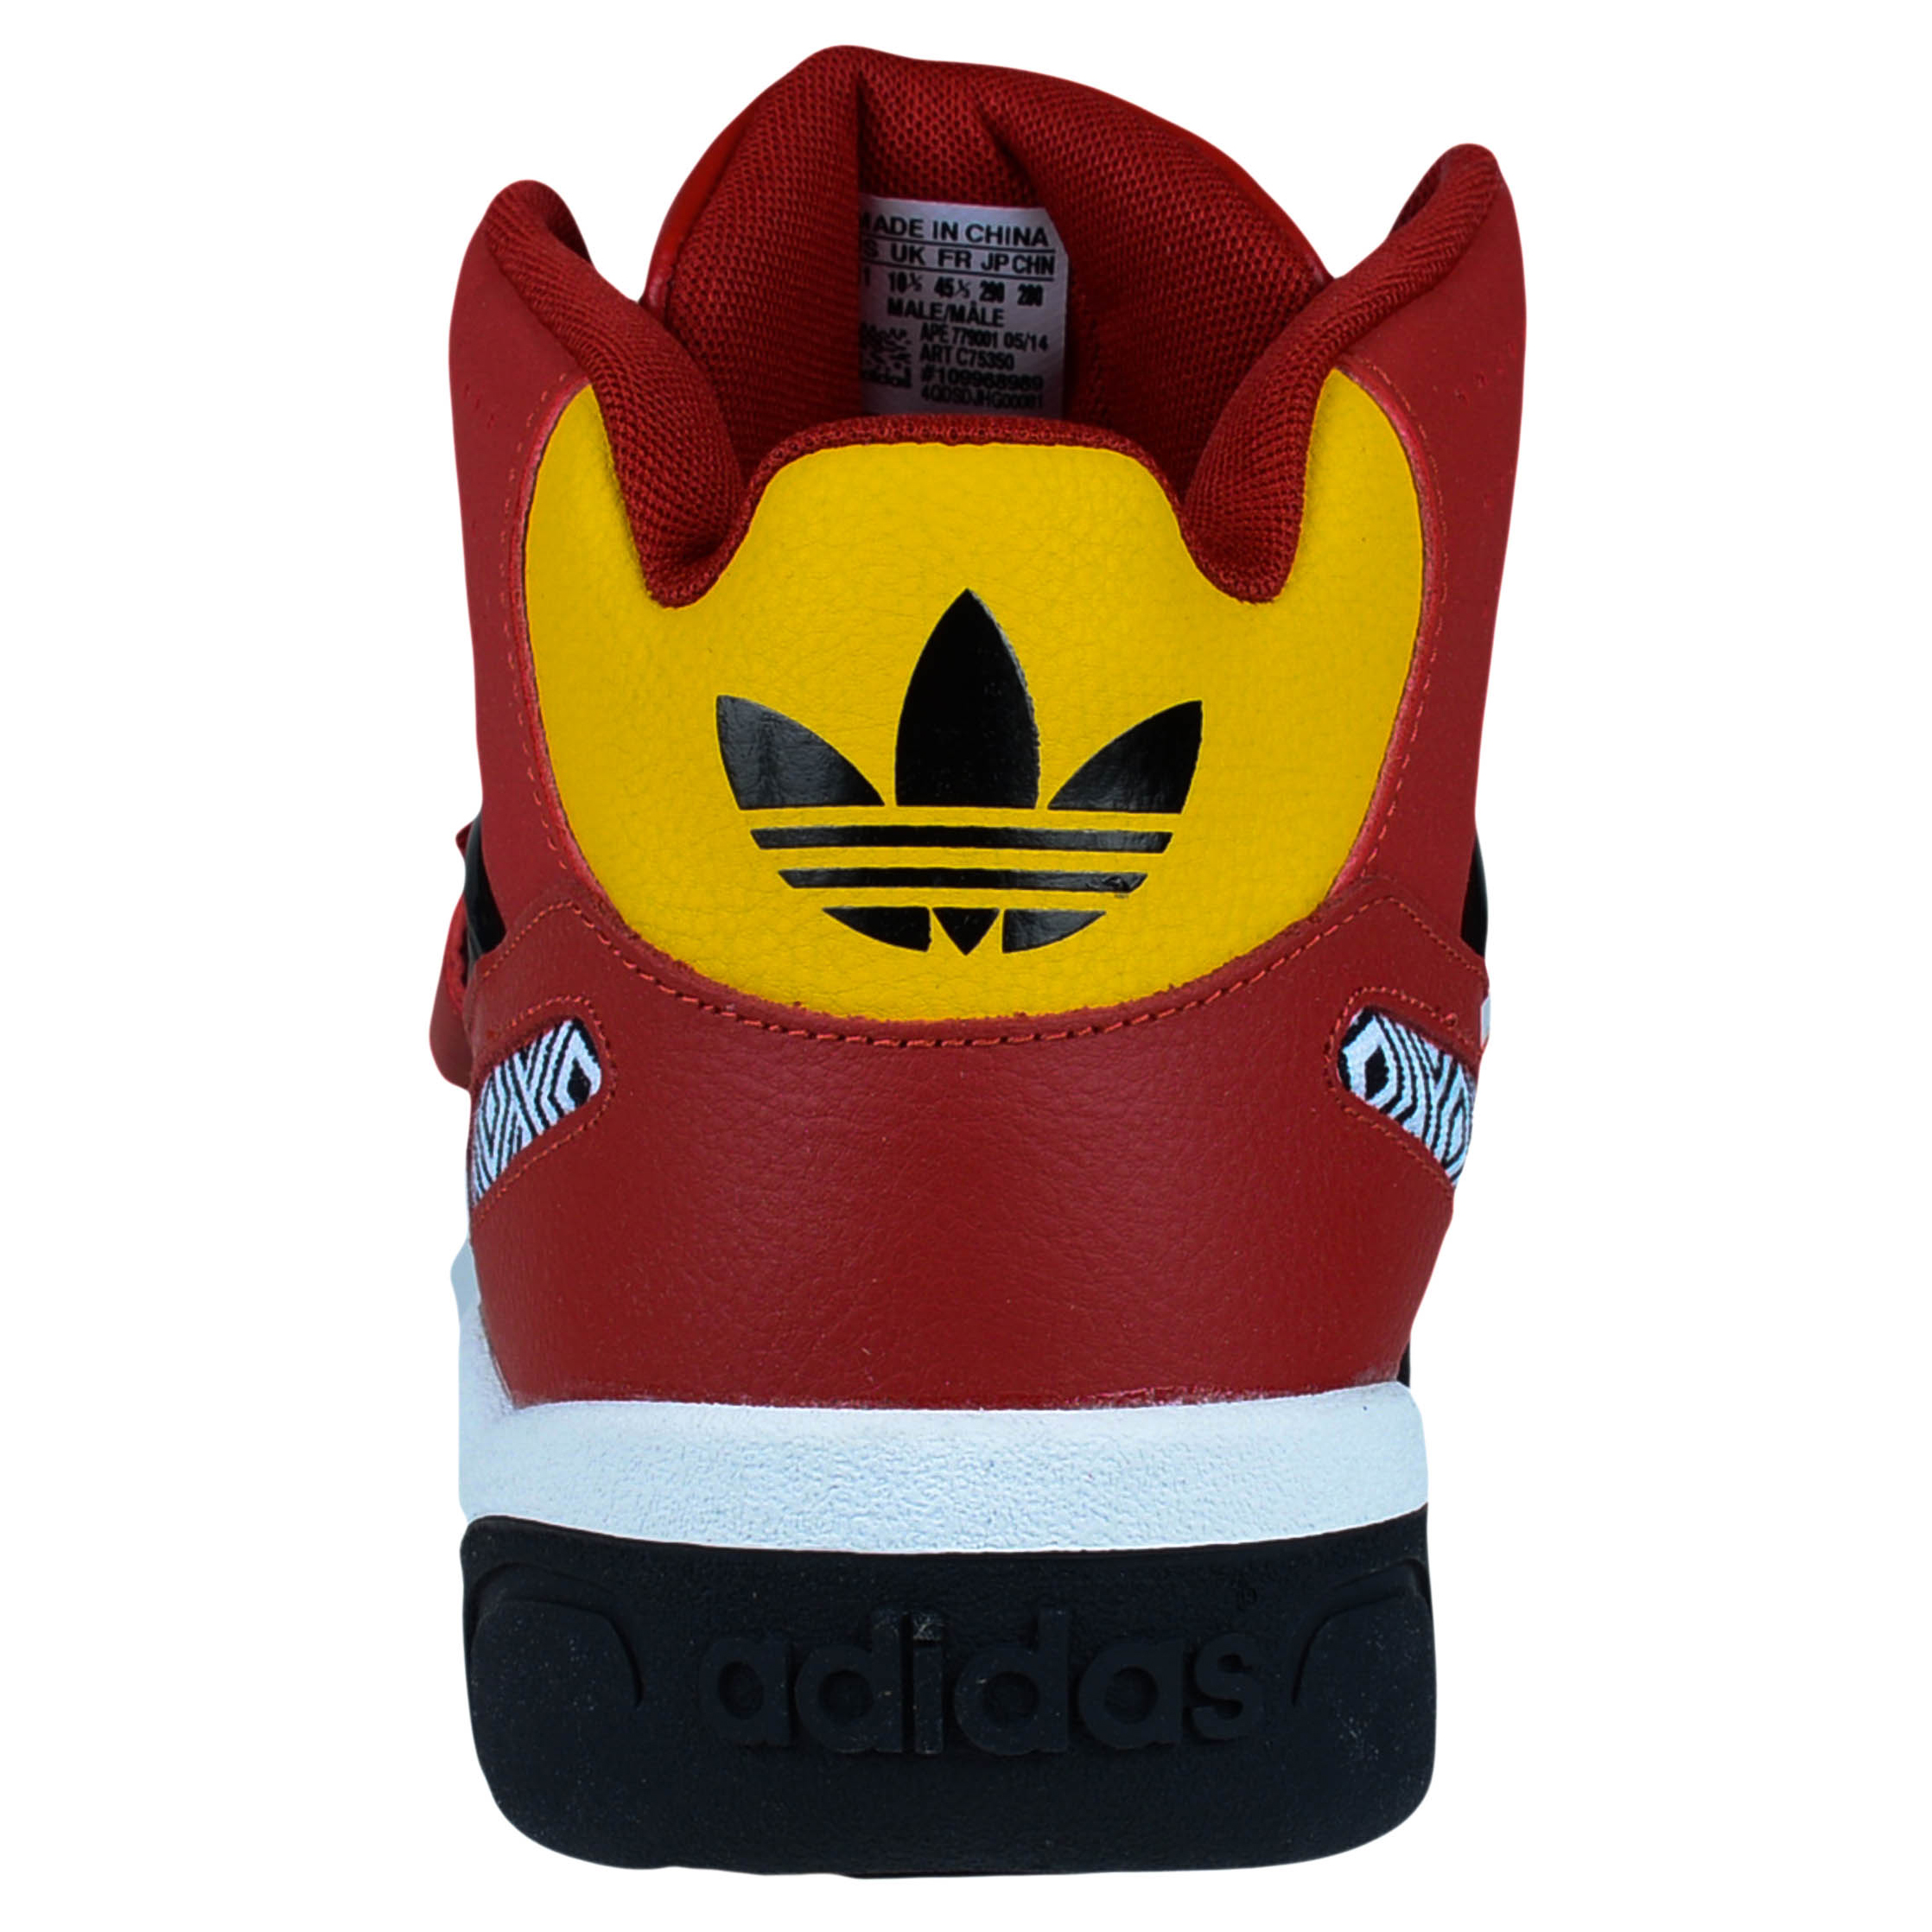 brand new c48b9 e8c18 ... ADIDAS MUTOMBO TR BLOCK CROSS TRAINERS CORE POWER RED CORE BLACK GOLD  C75350 ...